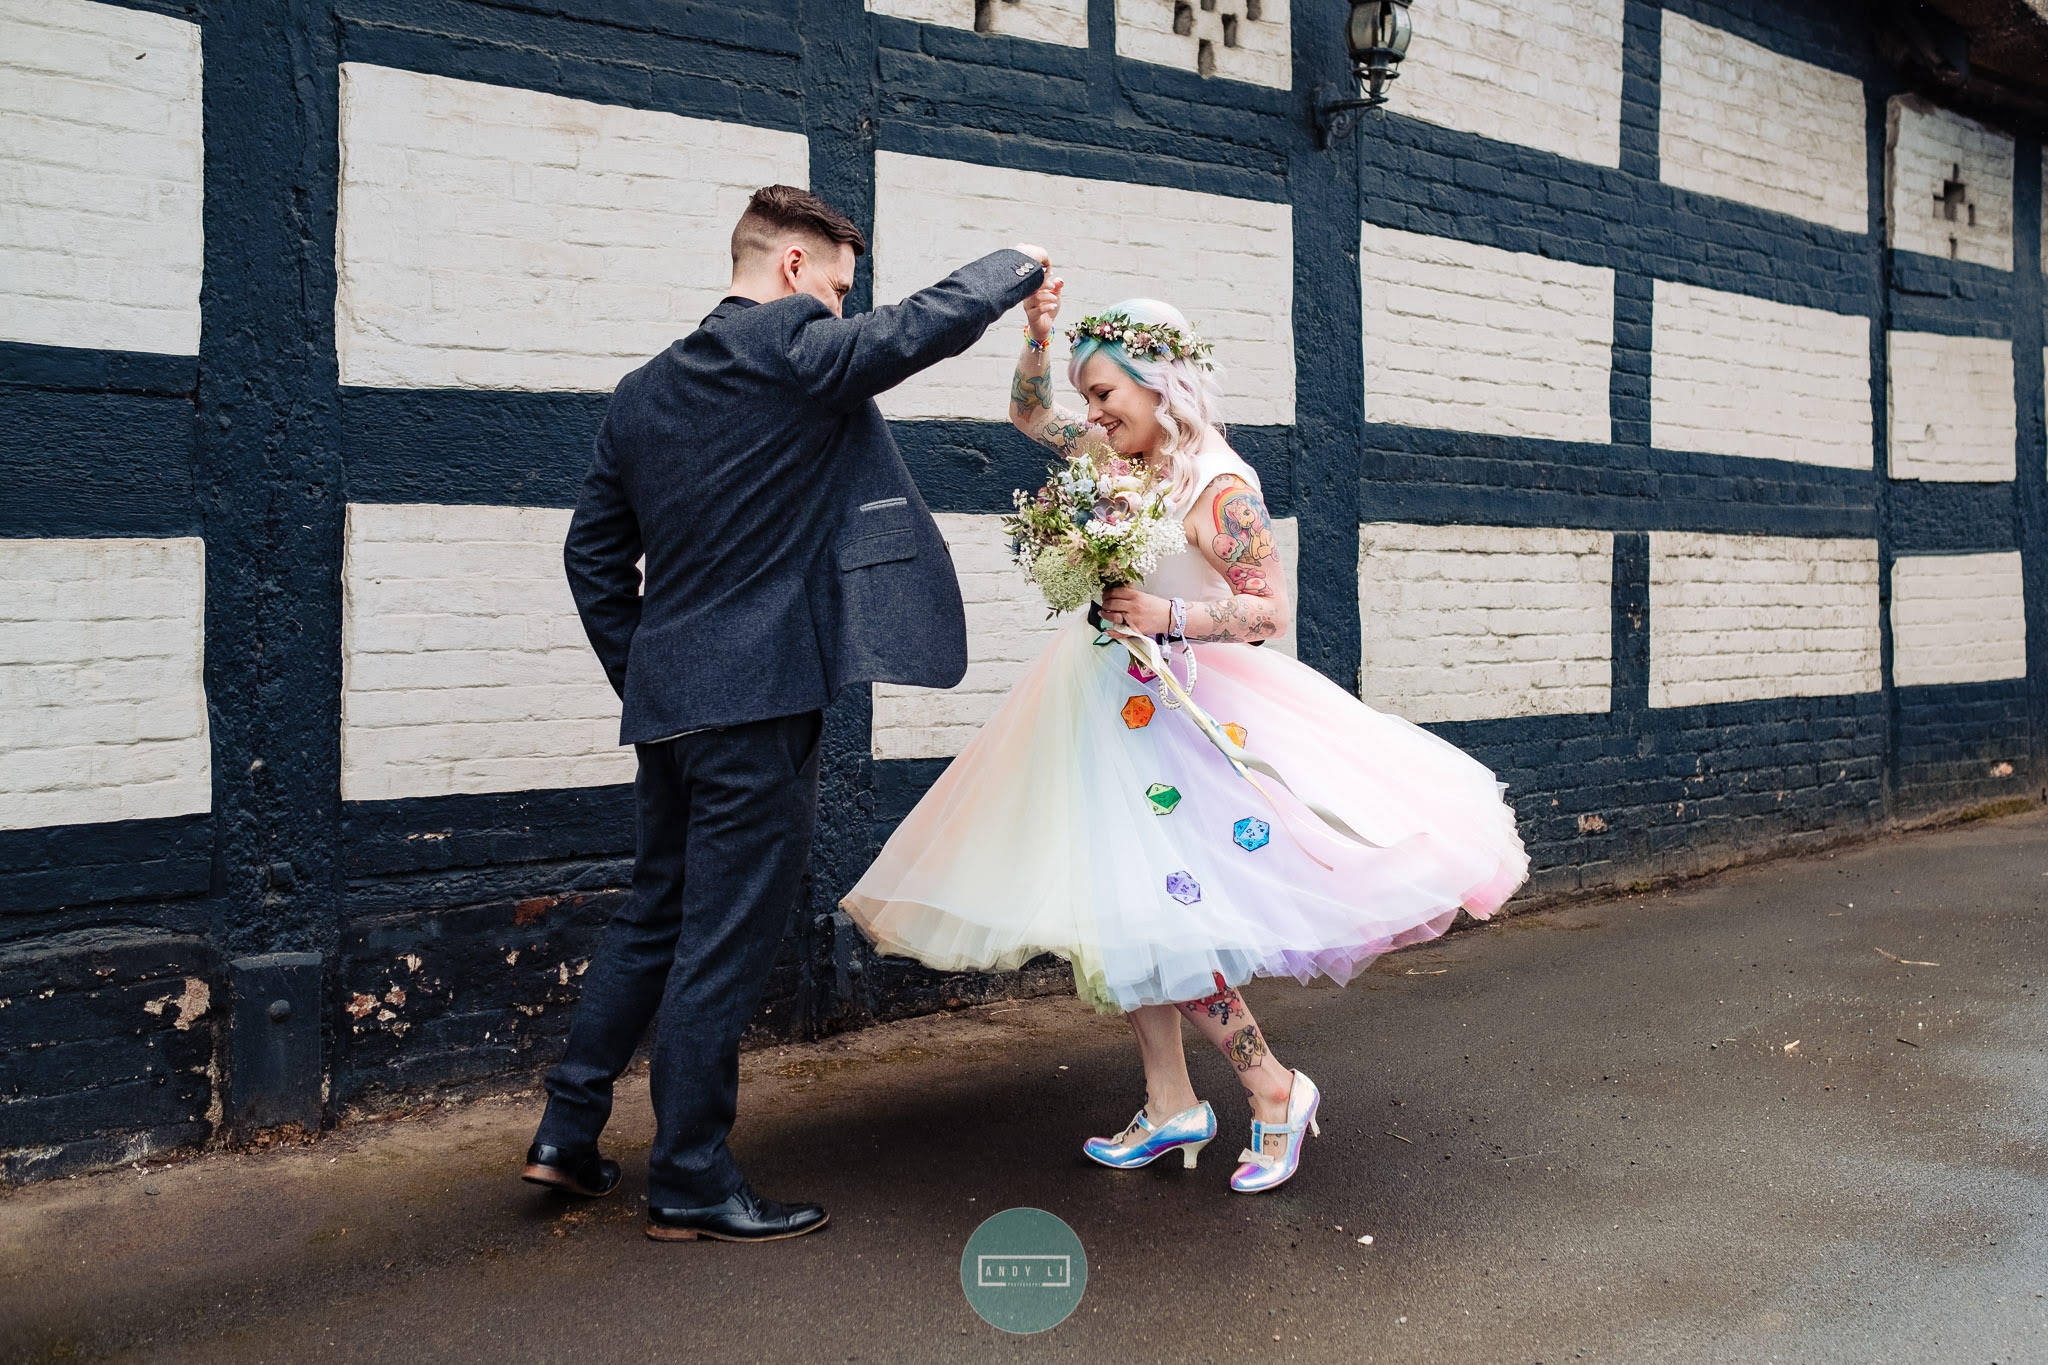 rainbow wedding dress by the little wedding shop - colourful wedding ideas with hand painted dice embellishments - dancing couple - quirky wedding dress ideas